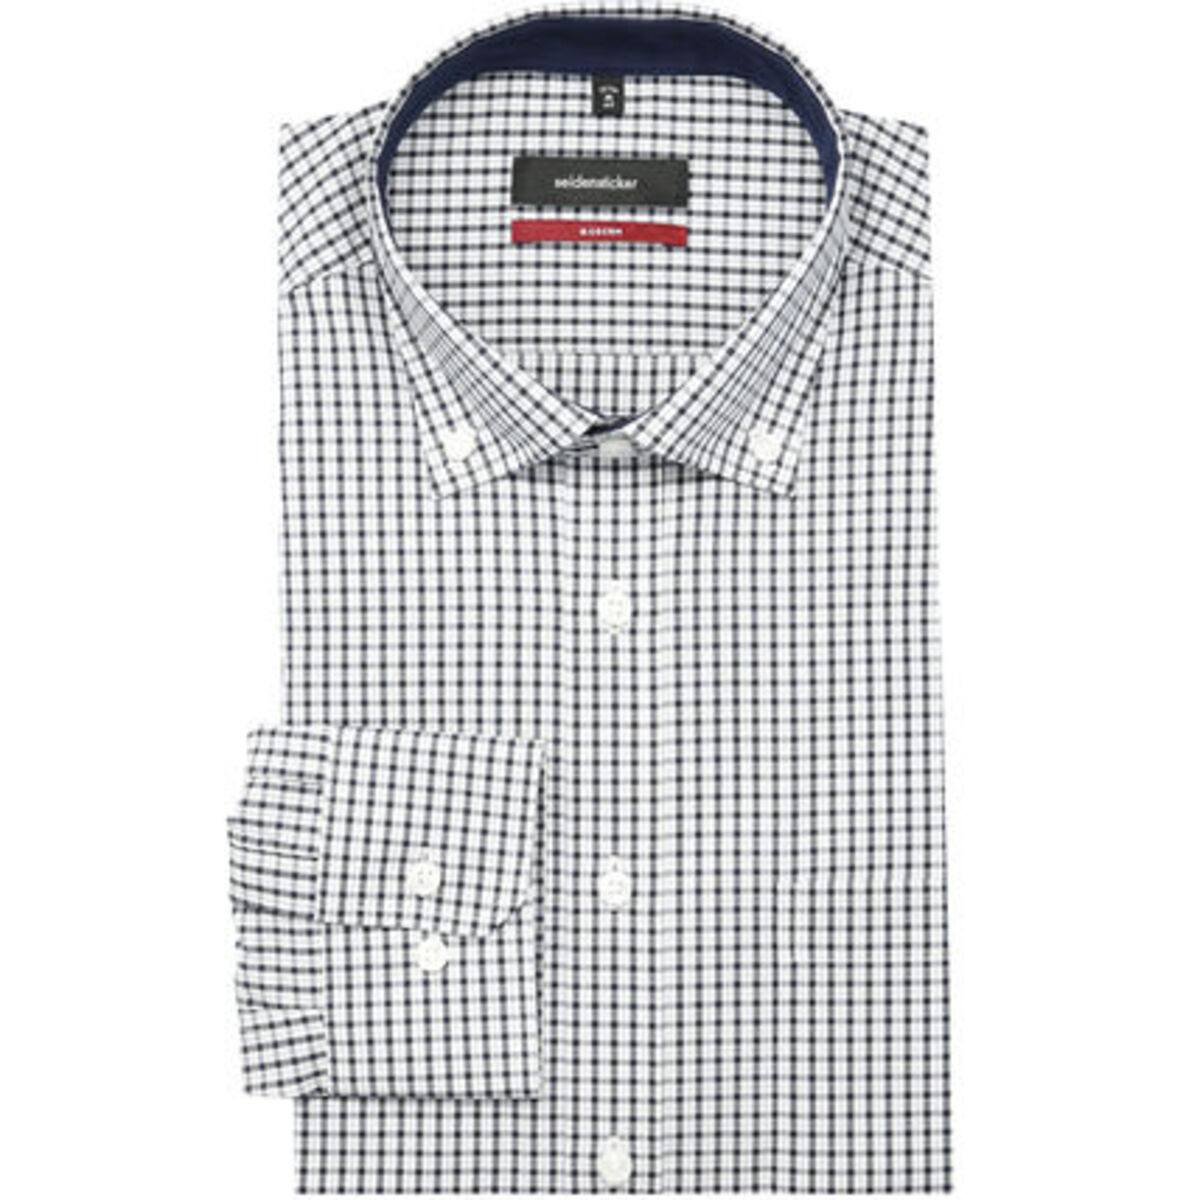 Bild 1 von Seidensticker Herren Businesshemd, 1/1-Arm, Button Down, Modern Fit